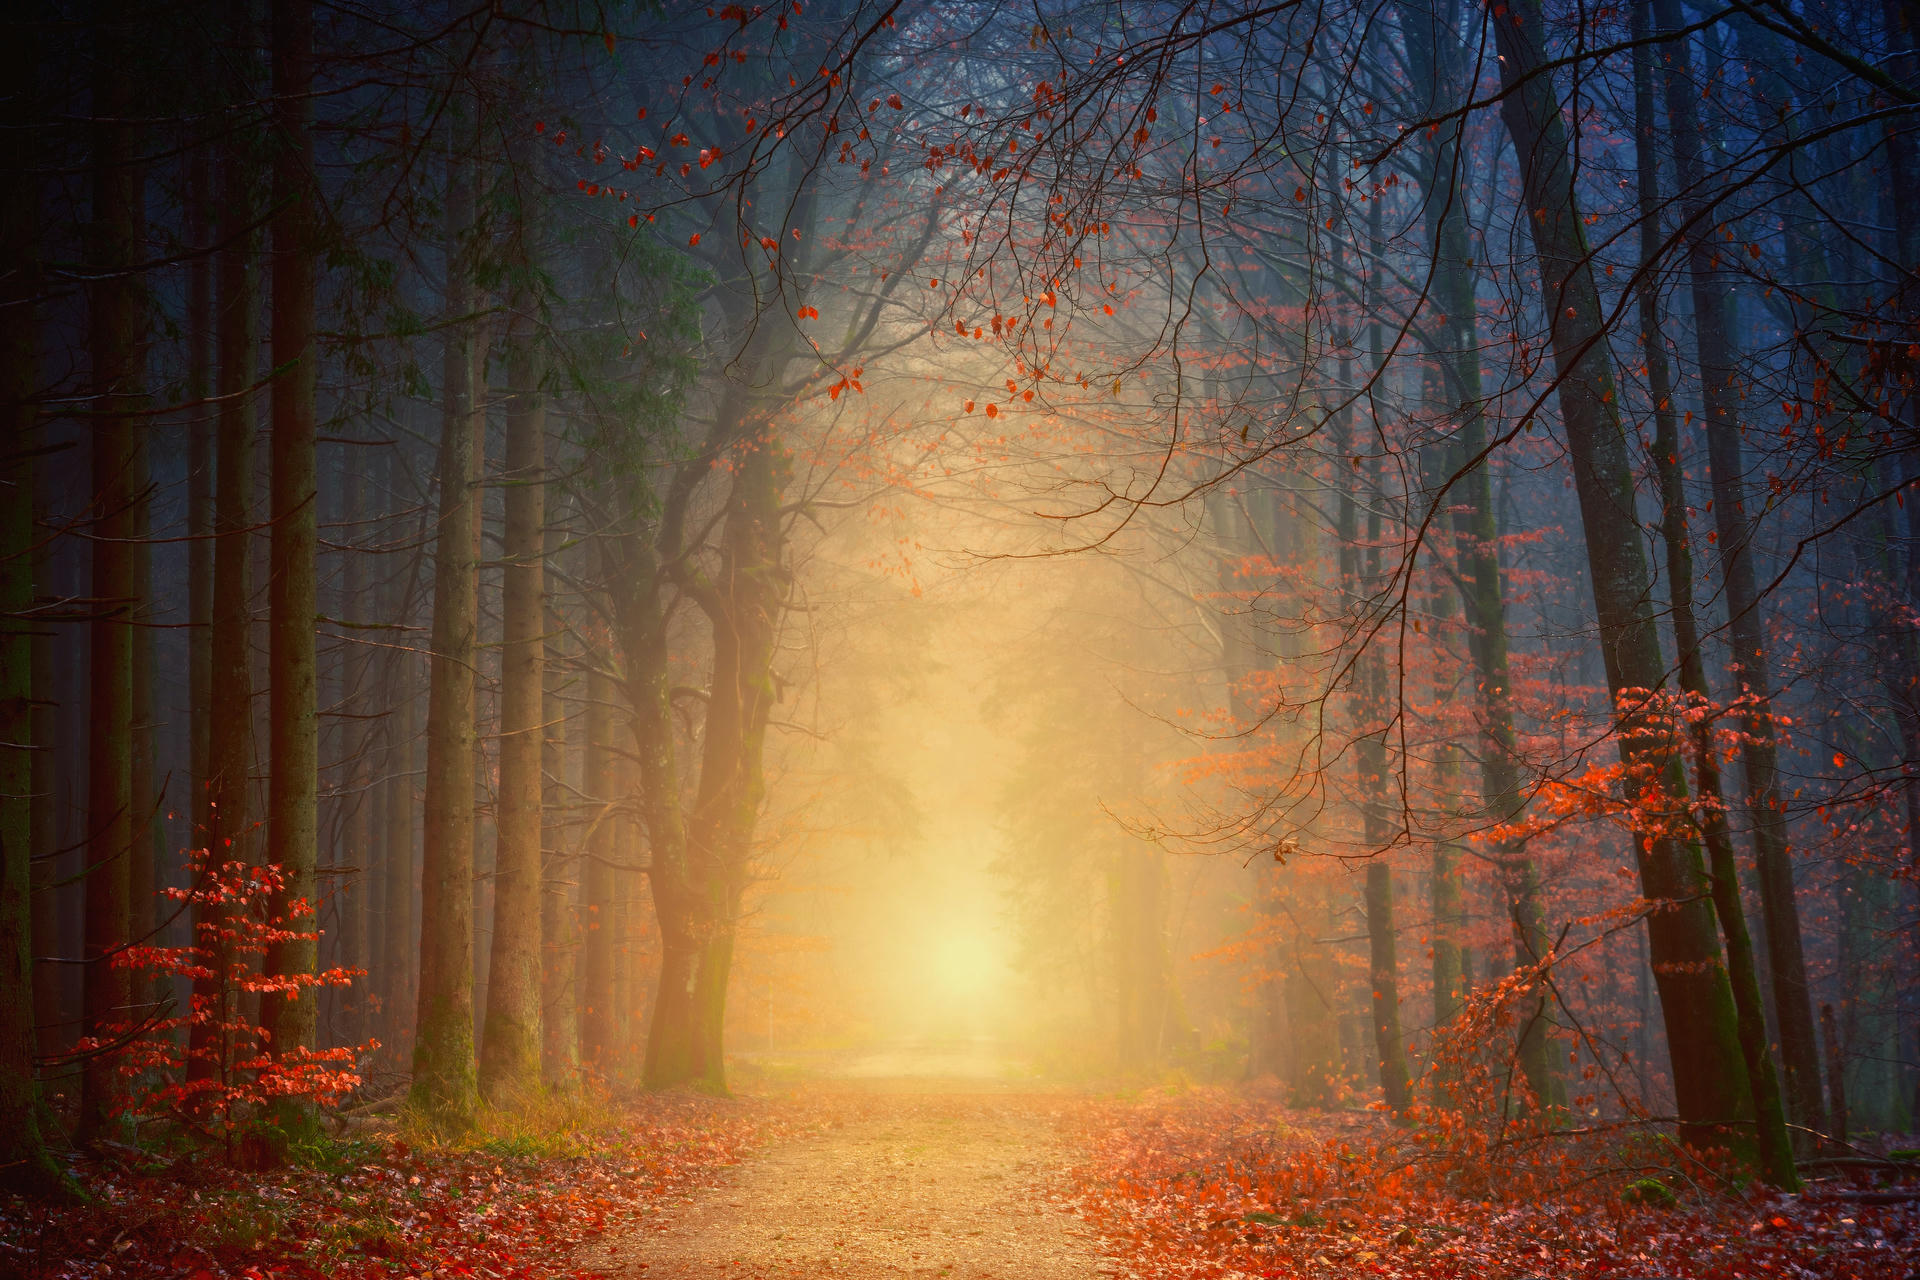 An illuminated path in a forest.